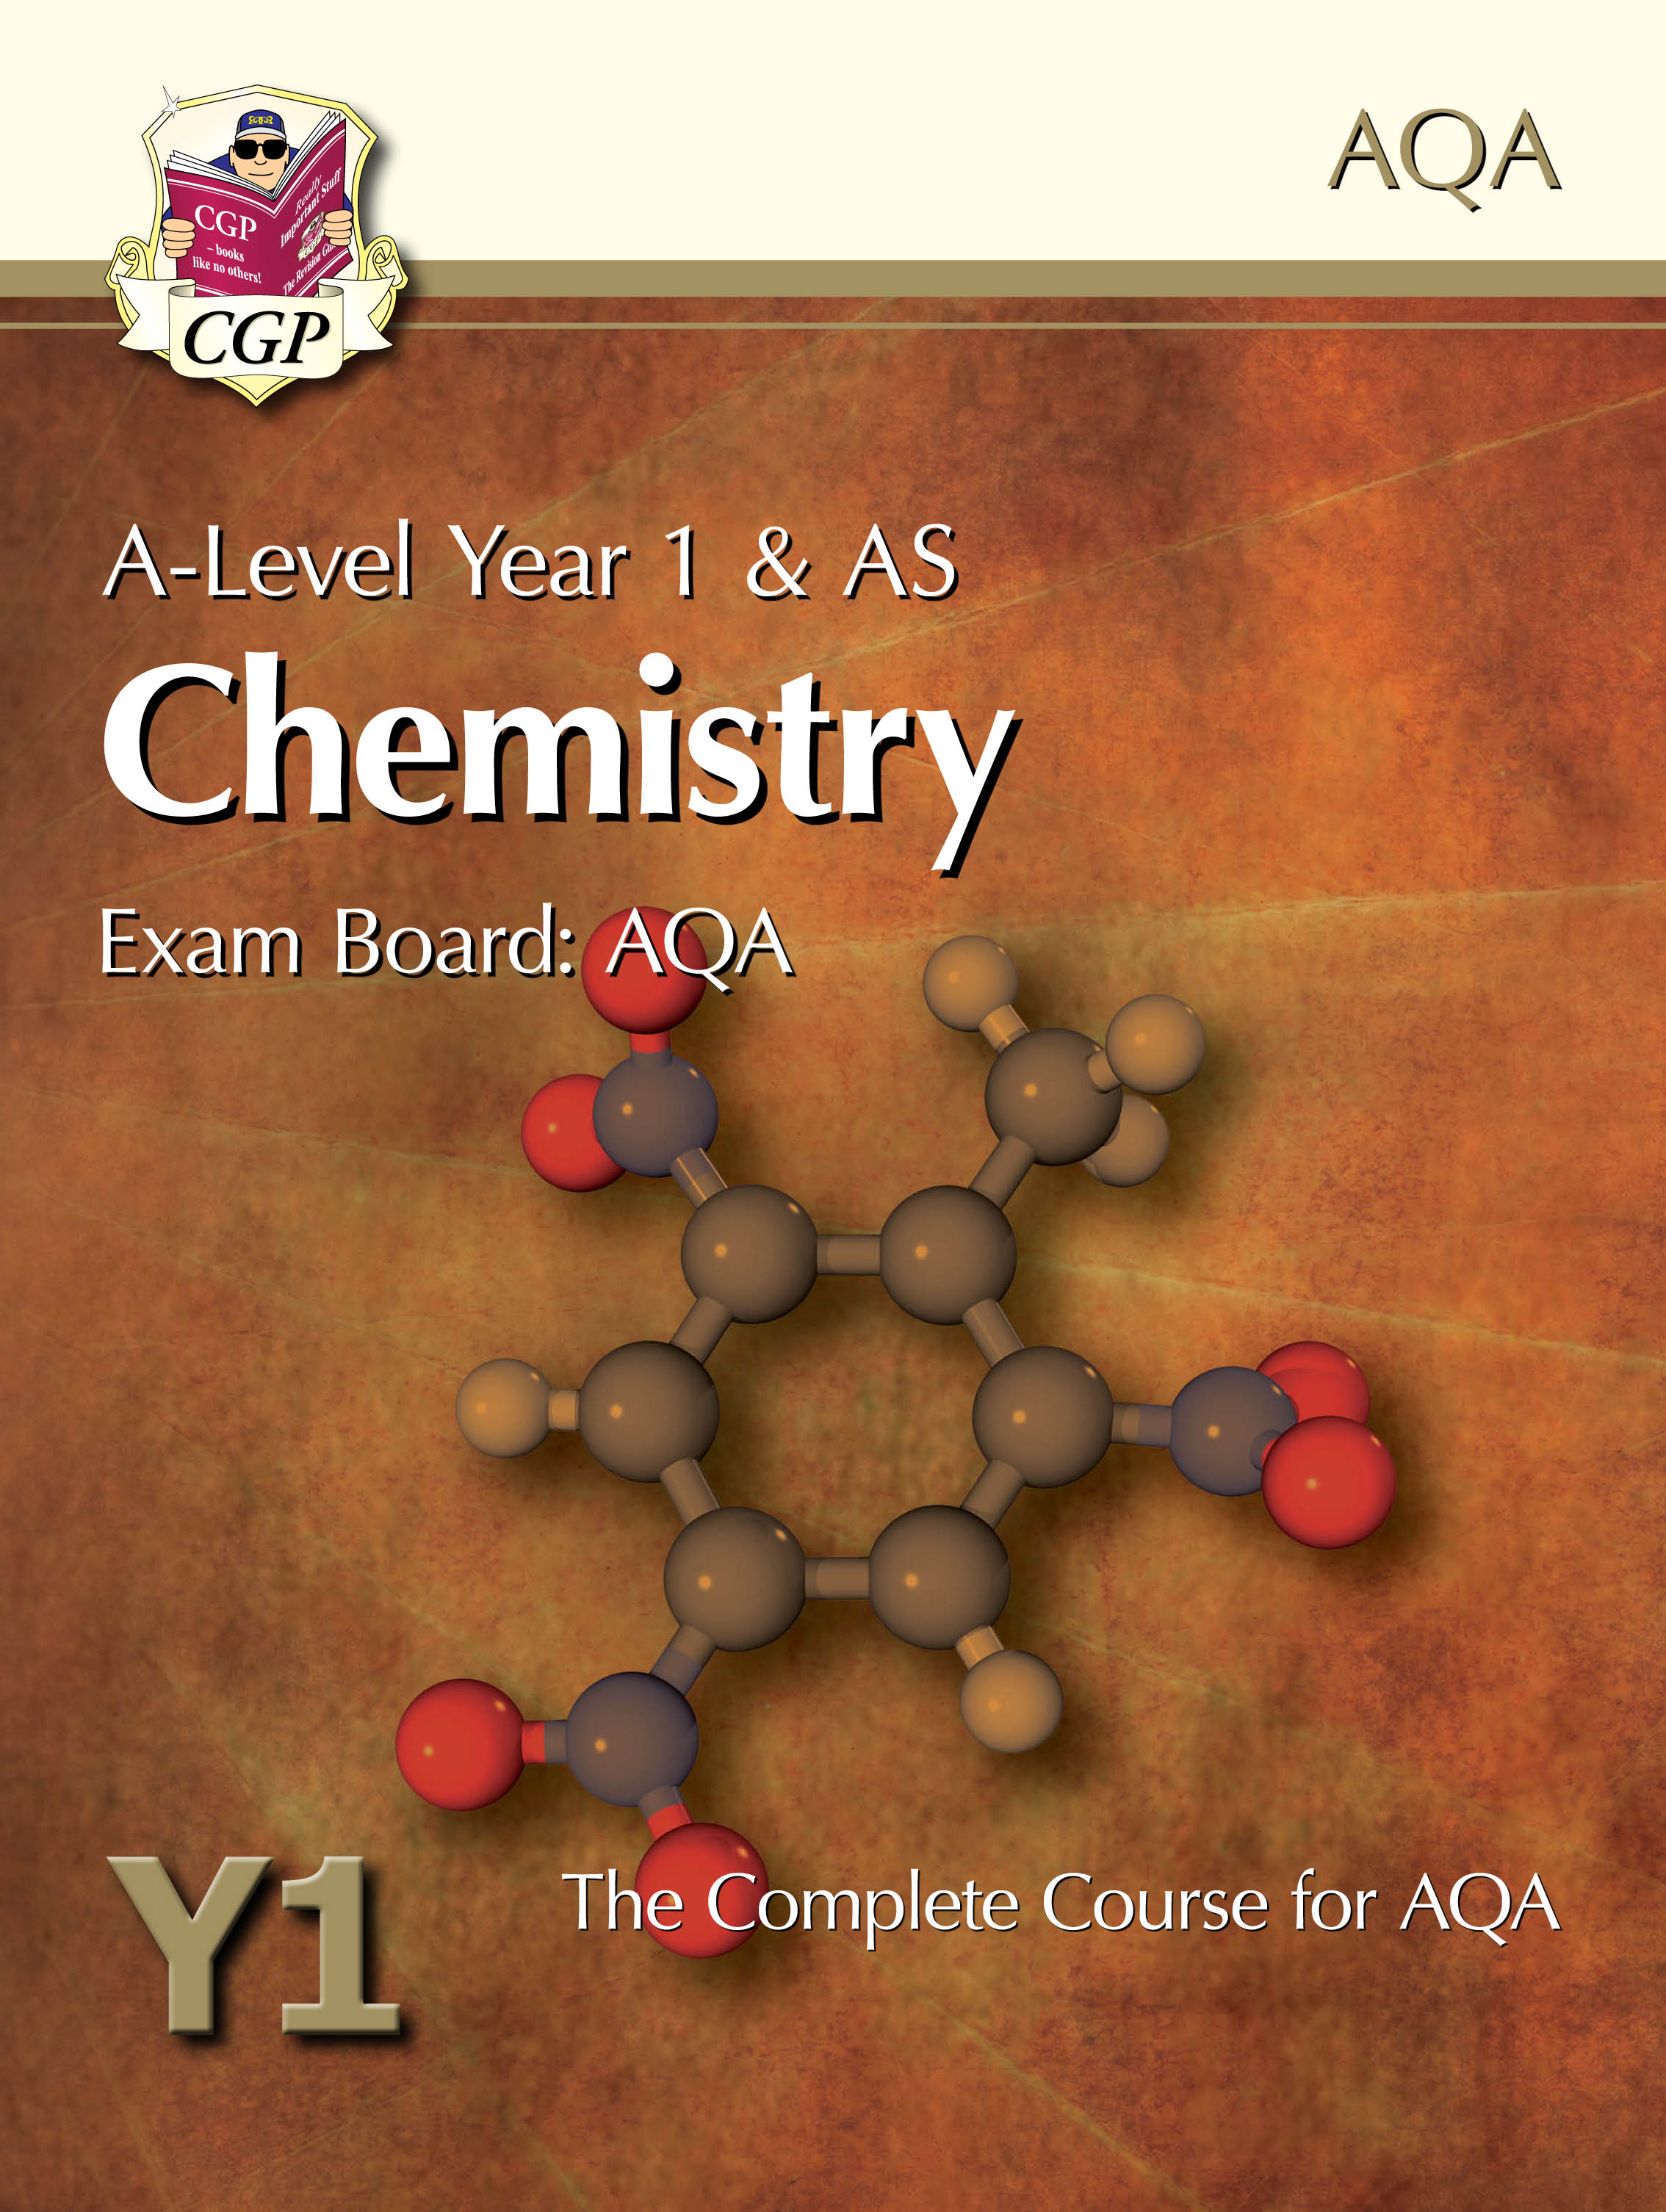 CATB52DK - A-Level Chemistry for AQA: Year 1 & AS Student Book